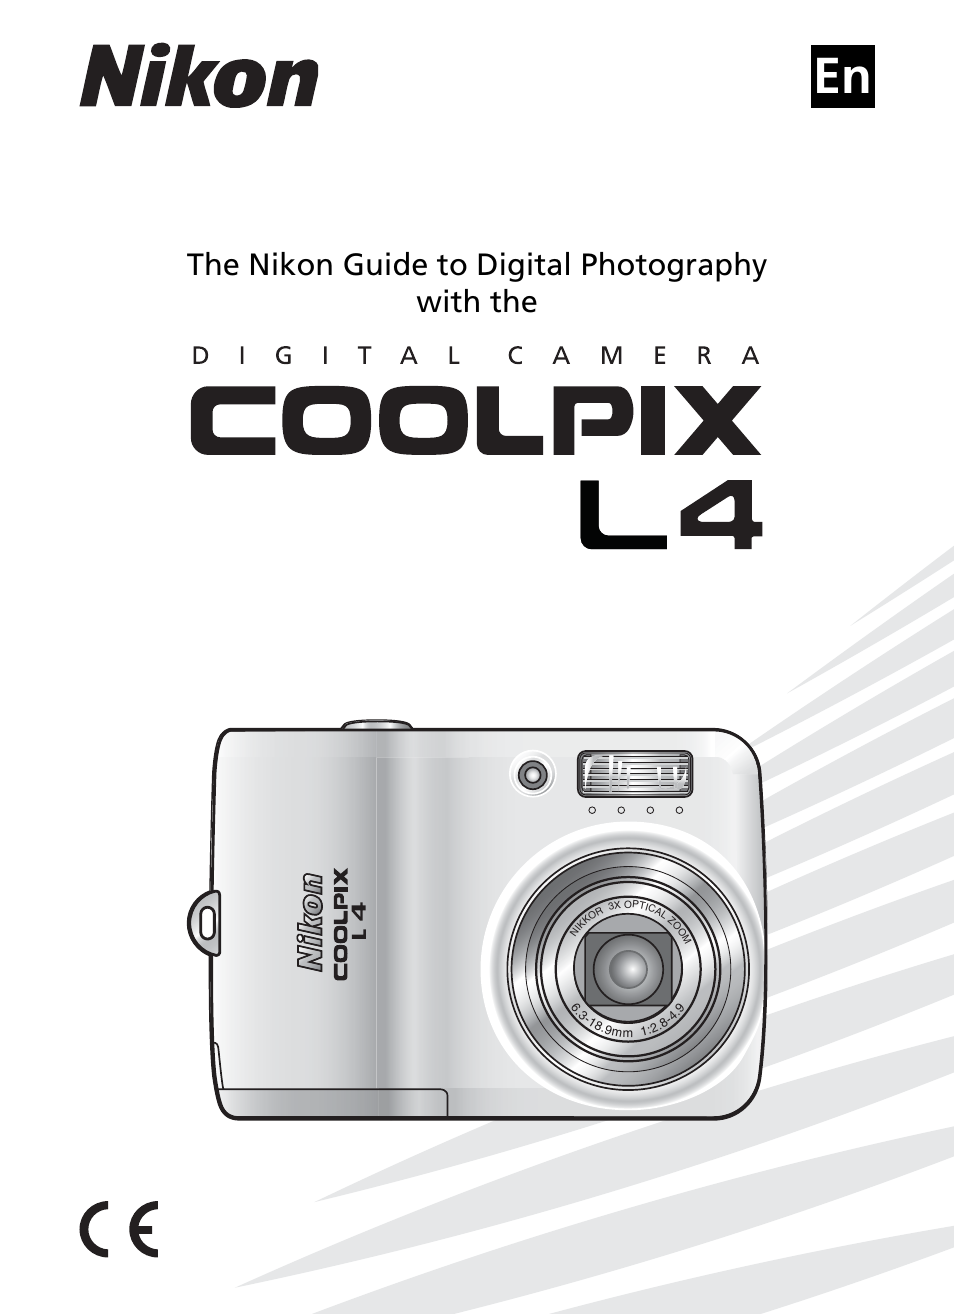 nikon coolpix l4 user manual 112 pages also for l4 rh manualsdir com Nikon Camera User Manual nikon coolpix l4 manual pdf